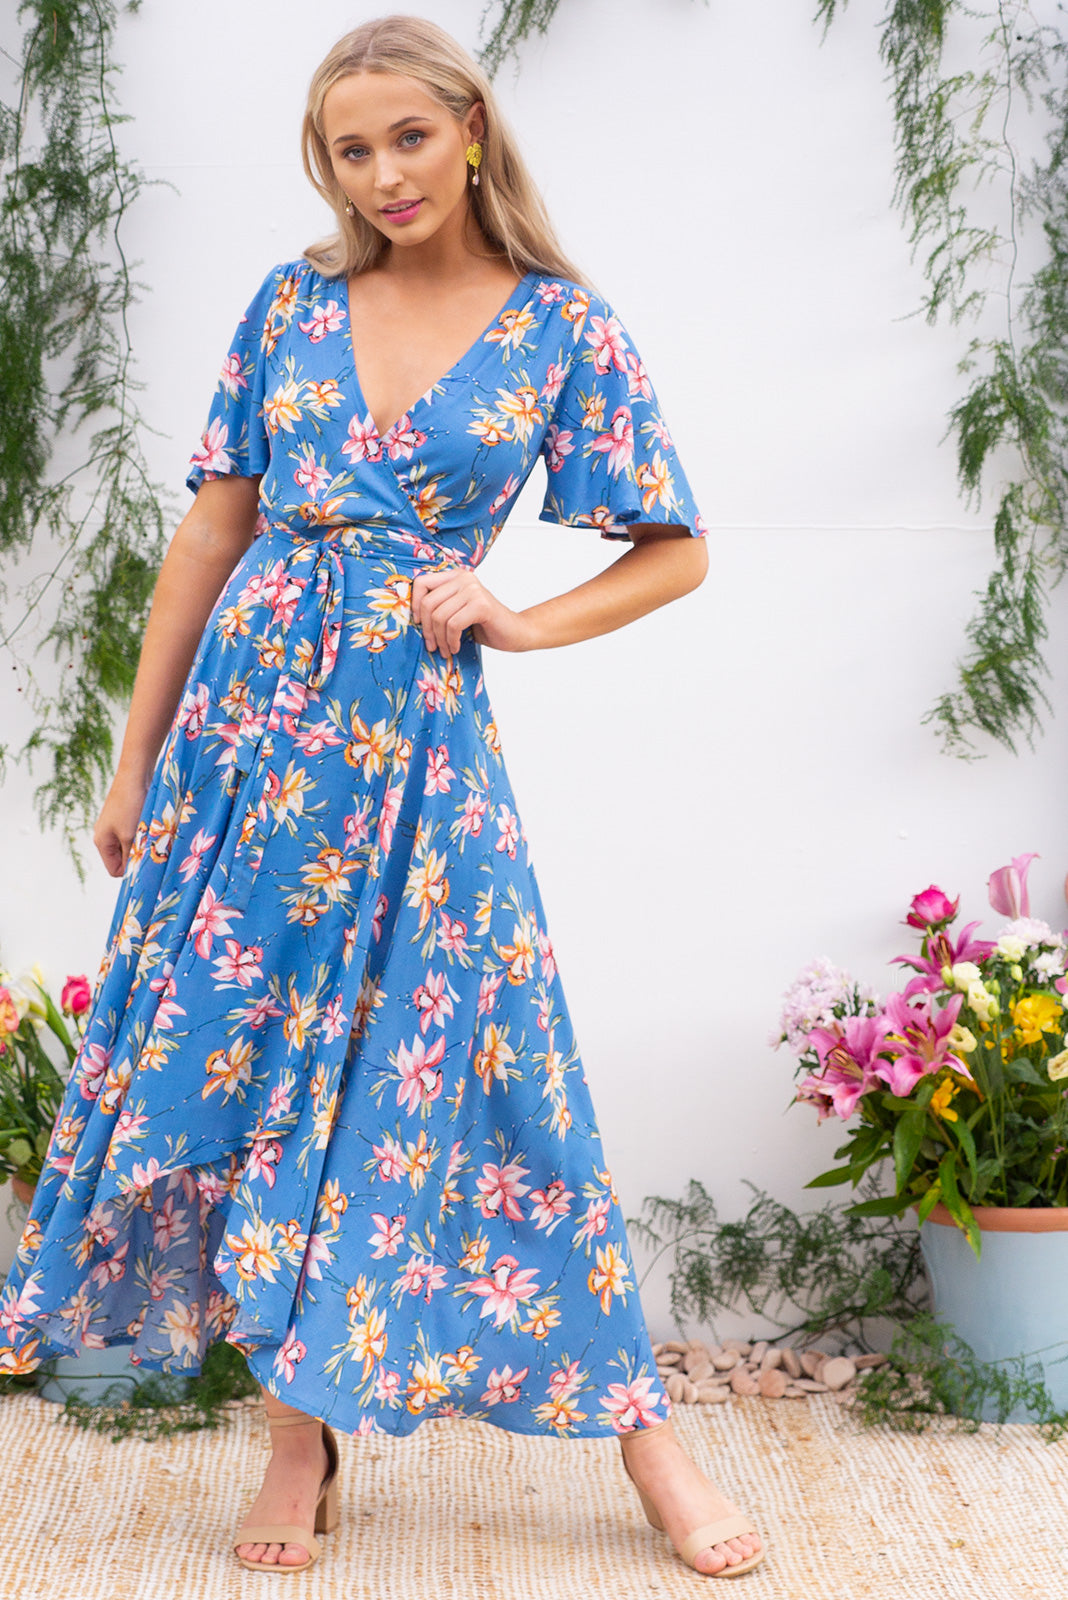 90f1c5c6a193 Petal Daffodil Skies Maxi Wrap Dress features a beautiful sky blue base  with a daffodil inspired